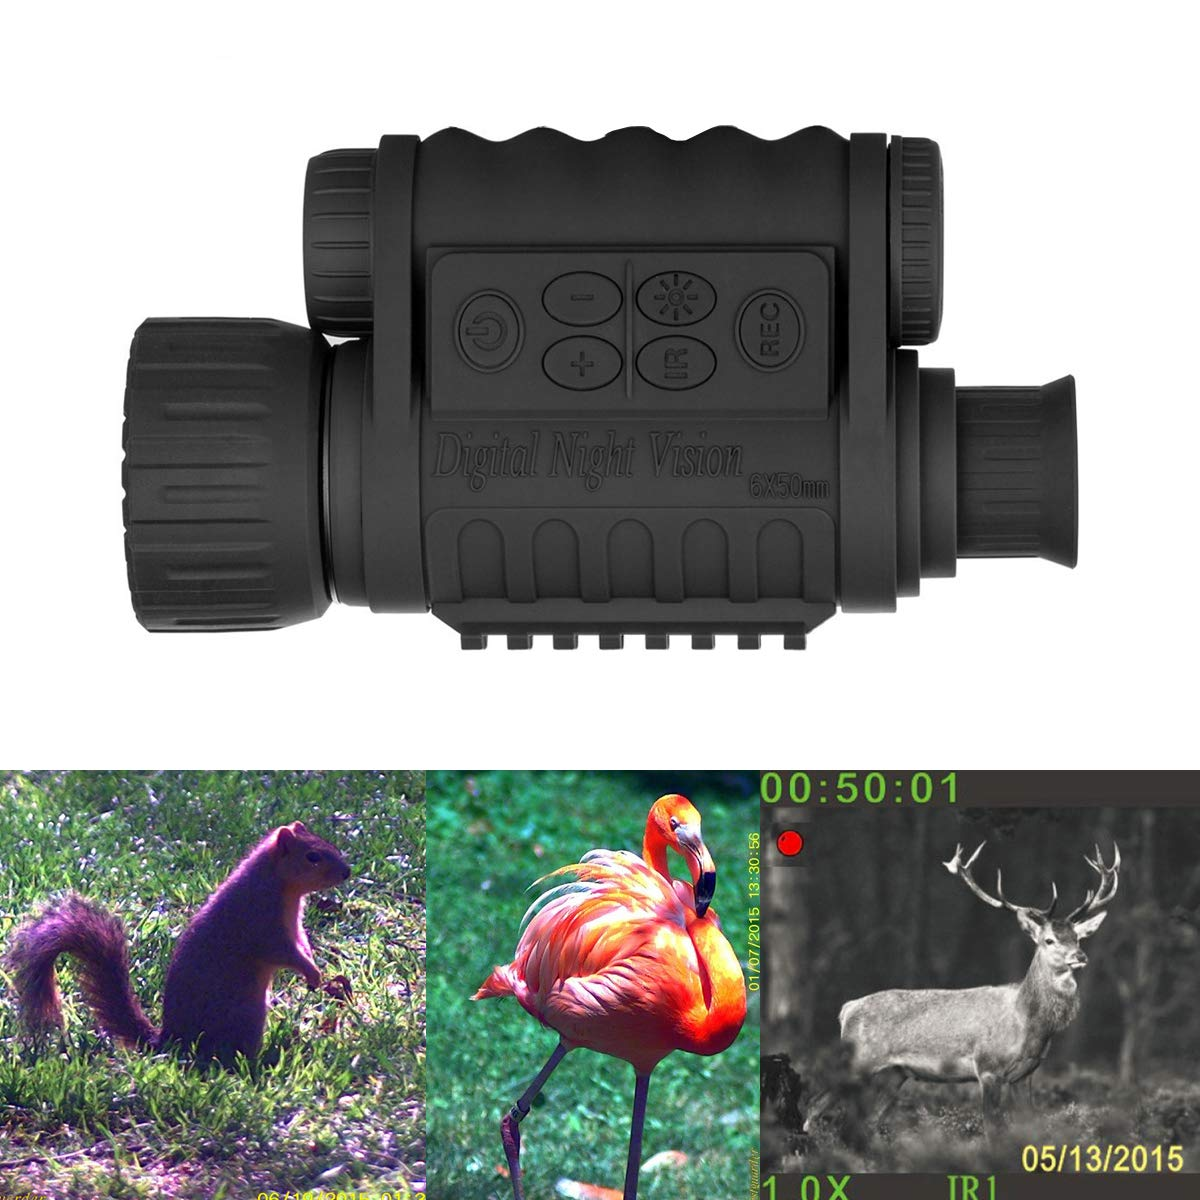 Guomu Digital Infrared Night Vision Monocular 6X 50 mm Takes 5mp Photo & 720p Video from 385 yards/1150 ft Distance in Complete Darkness for Night Hunting/Fishing (Classic Type) by Guomu